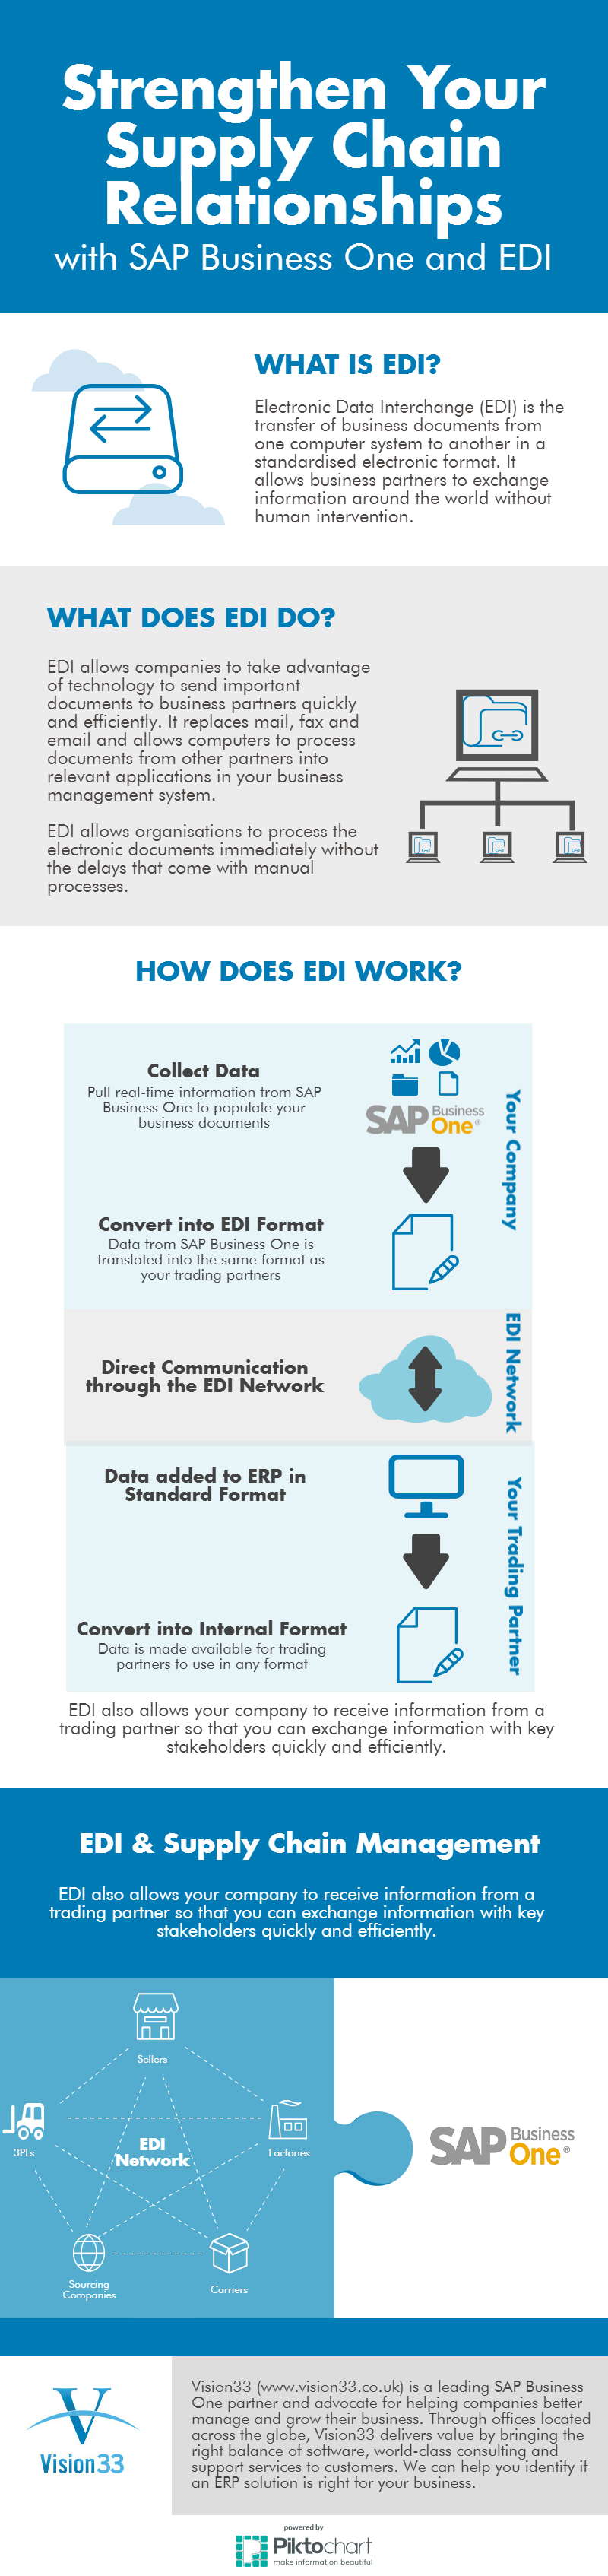 What is Electronic Data Interchange (EDI)?